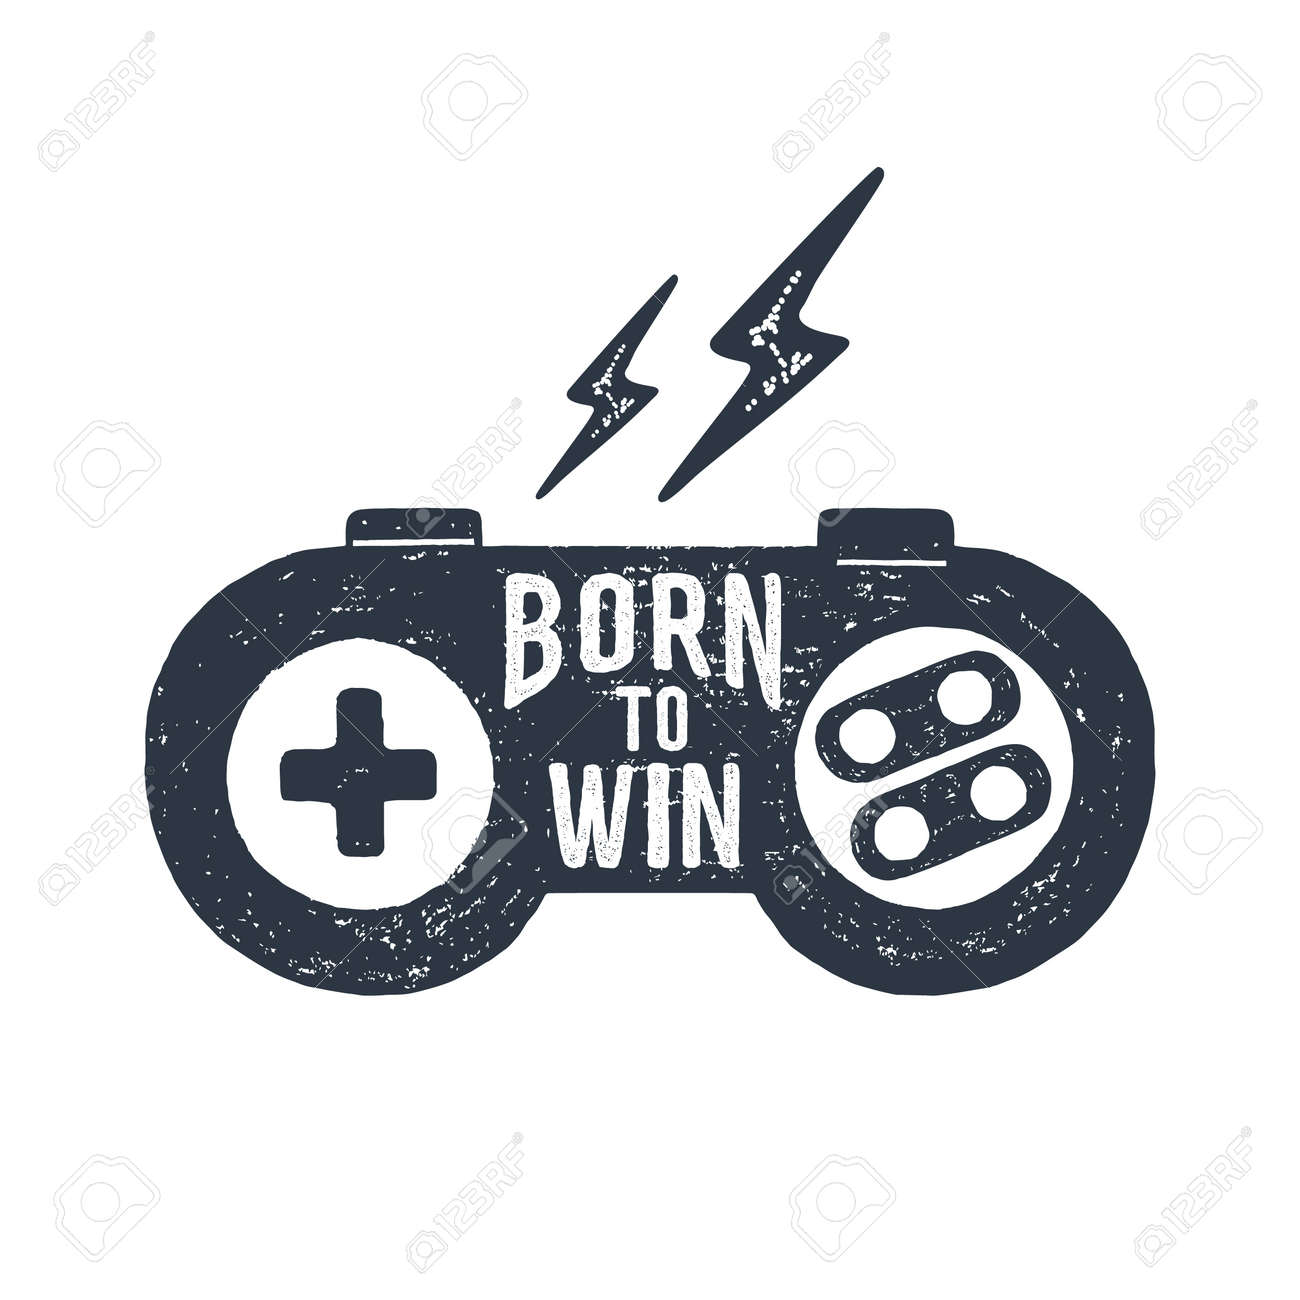 """Hand drawn 90s themed badge with gamepad textured vector illustration and """"Born to win"""" inspirational lettering. - 73433622"""